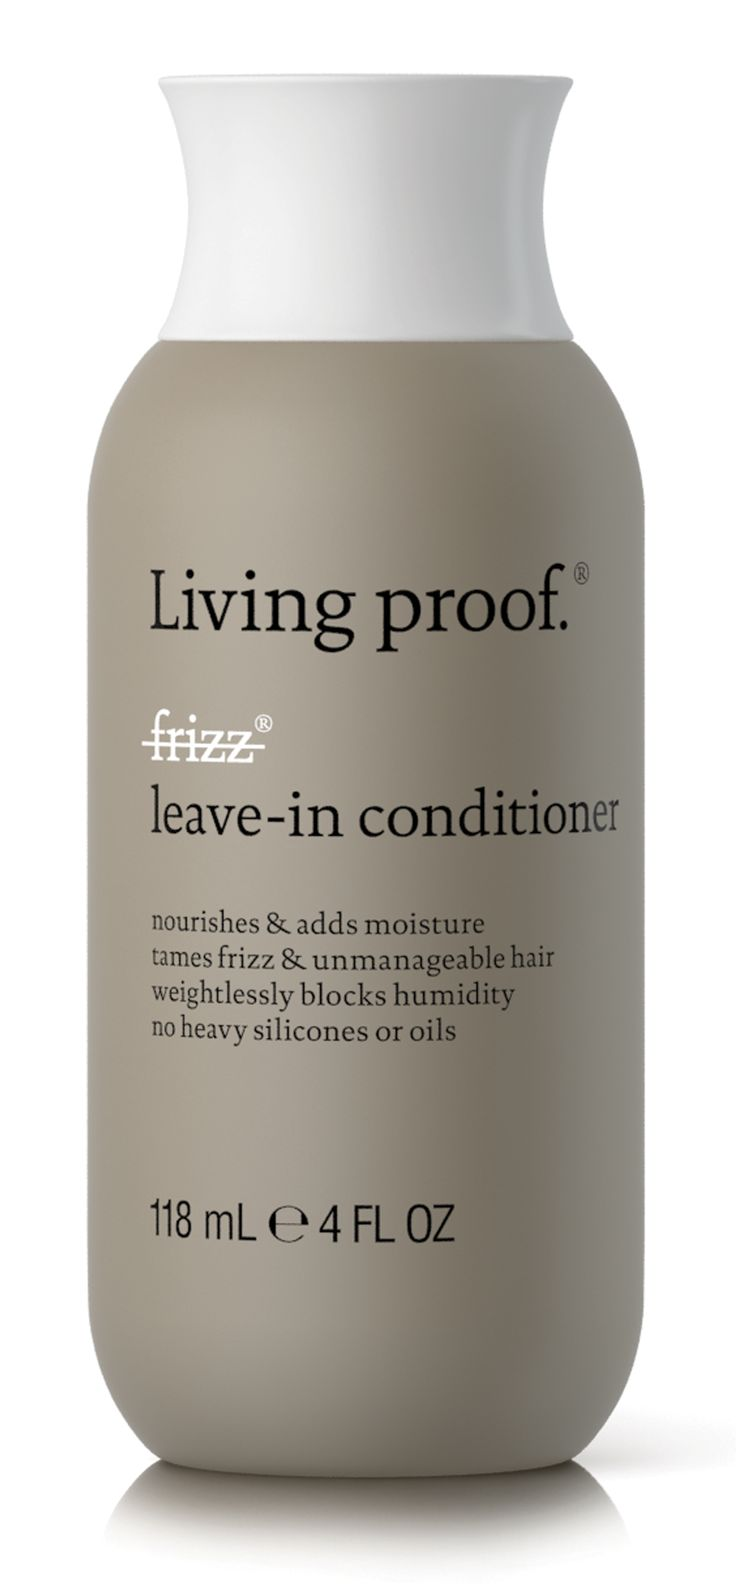 When you need just a little more frizz-fighting, No Frizz Leave-In Conditioner has you covered. It keeps your hair looking shiny, healthy and polished.